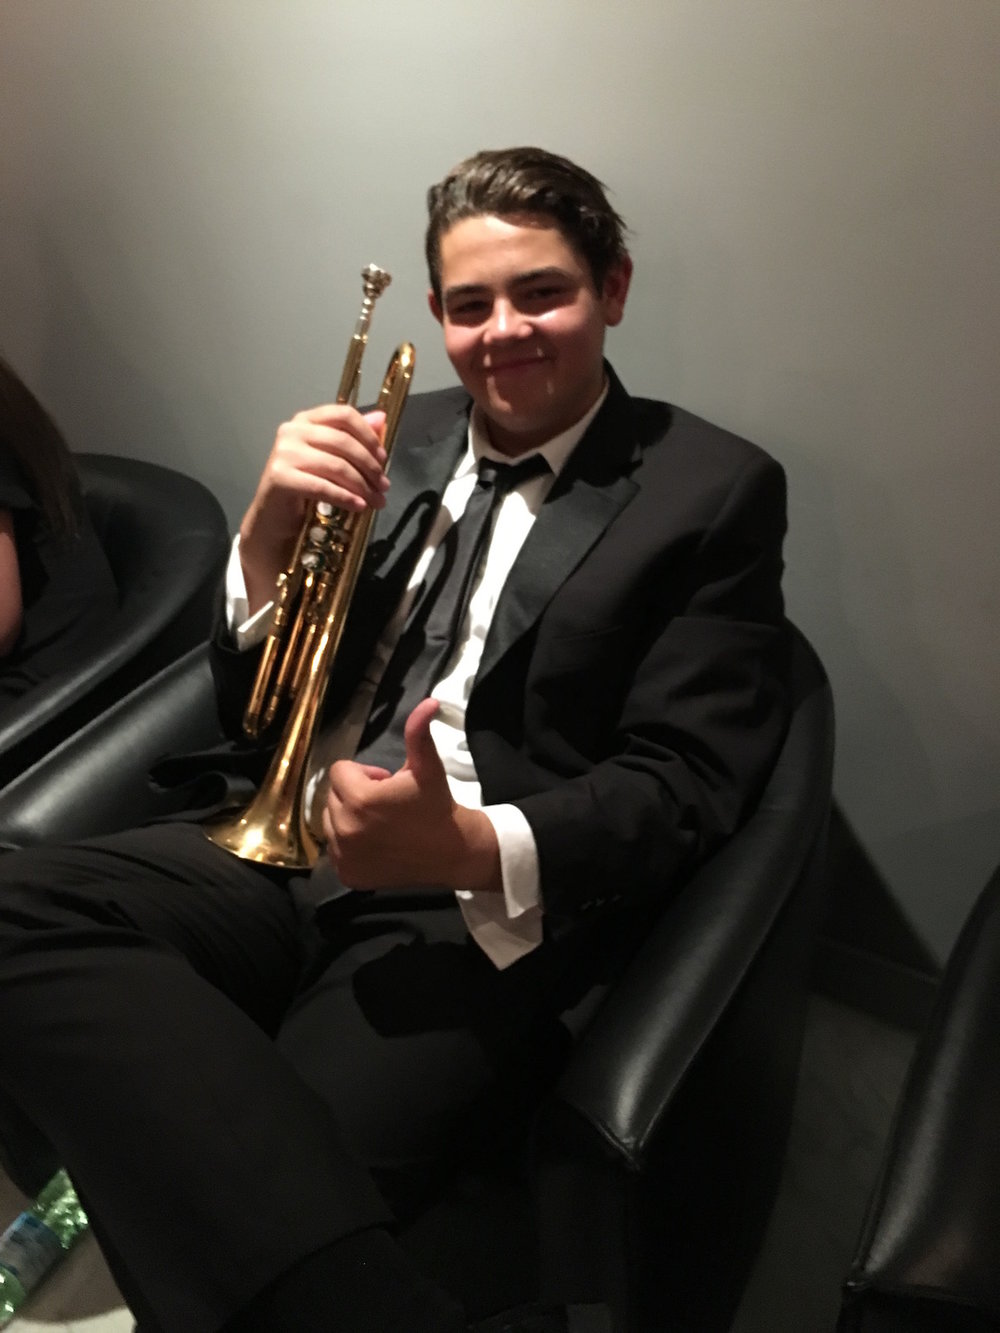 One of our trumpets preparing before our Cremona concert. The maturity and demeanor of the students made us all very proud. Their professionalism was evident to our audiences and all the Italians we encountered.